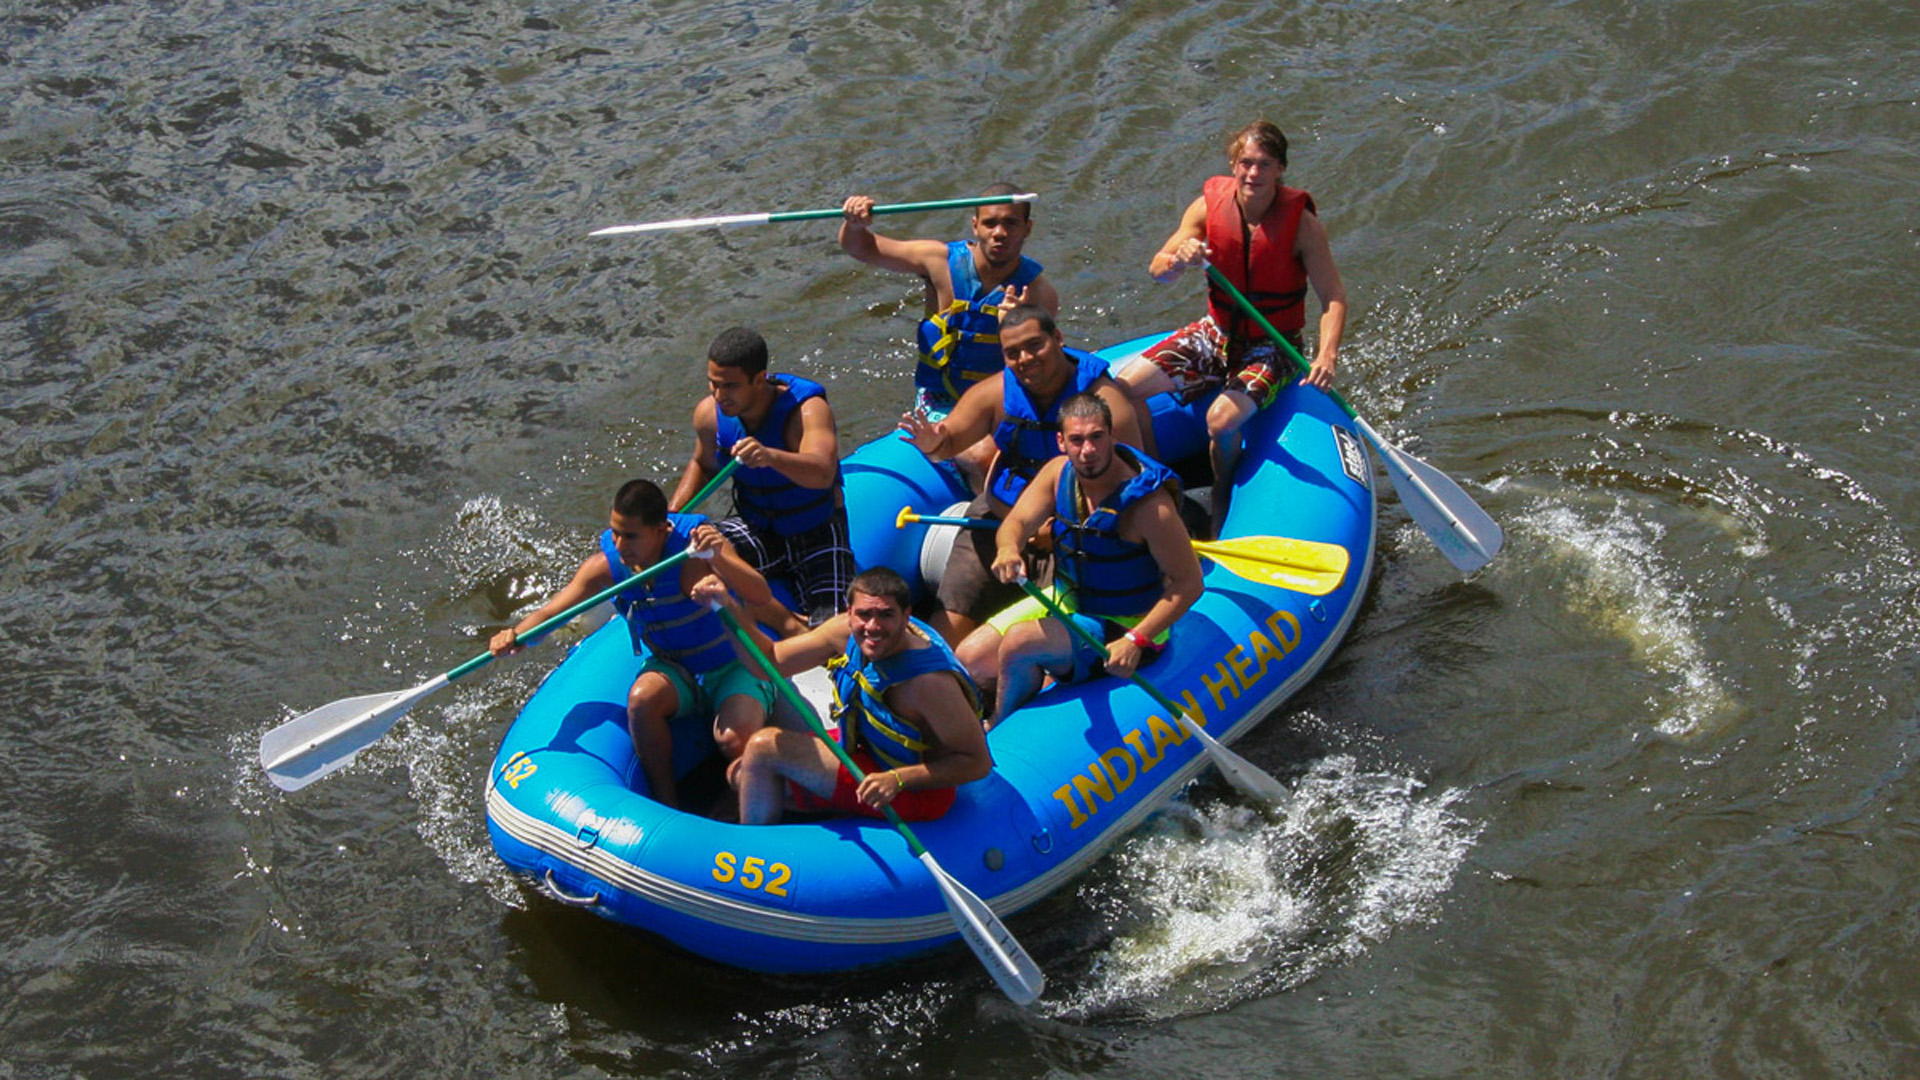 guy friends look up from raft to smile at camera Indian Head Canoeing Rafting Kayaking Tubing Delaware River